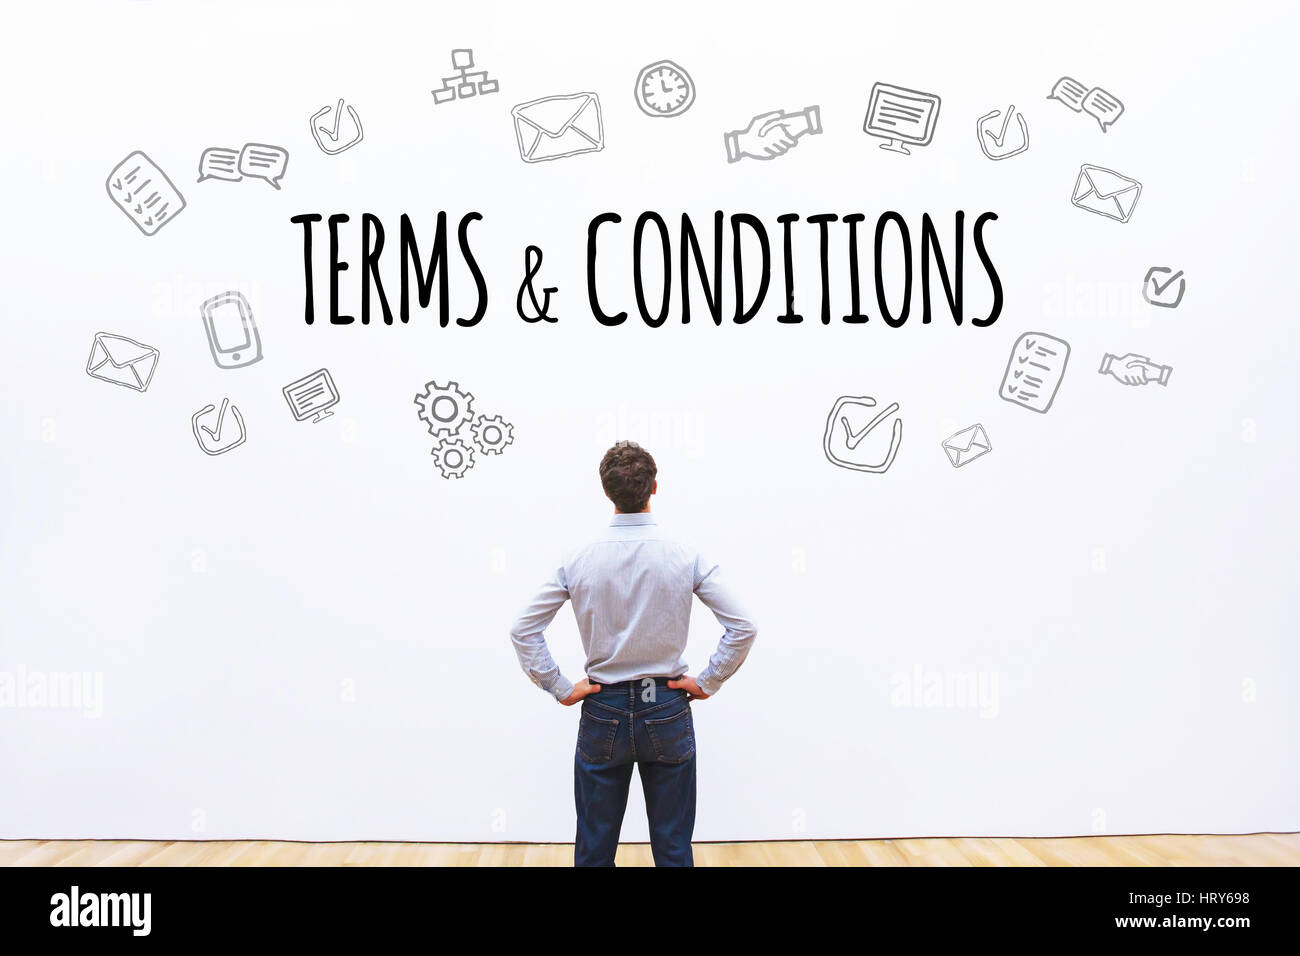 Termes et conditions, mot concept background Photo Stock